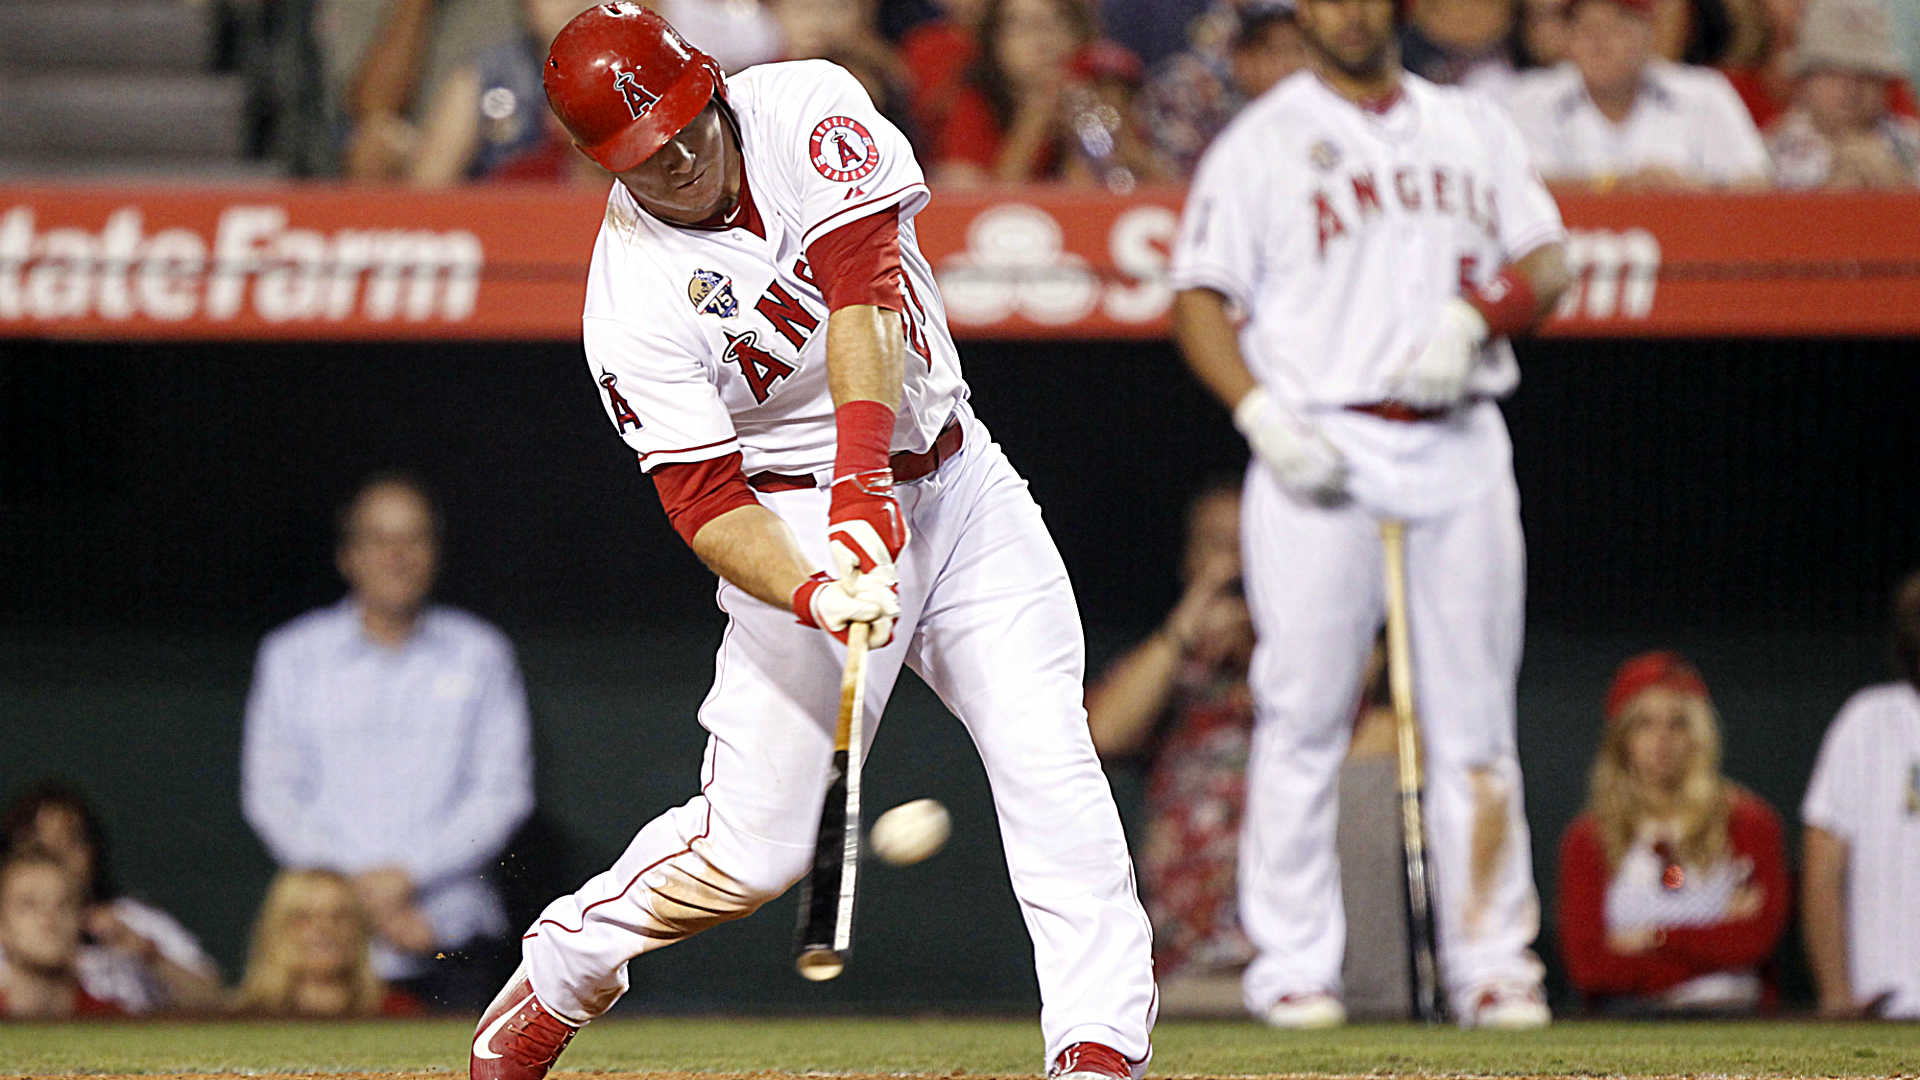 Mike-Trout-070414-AP-FTR.jpg